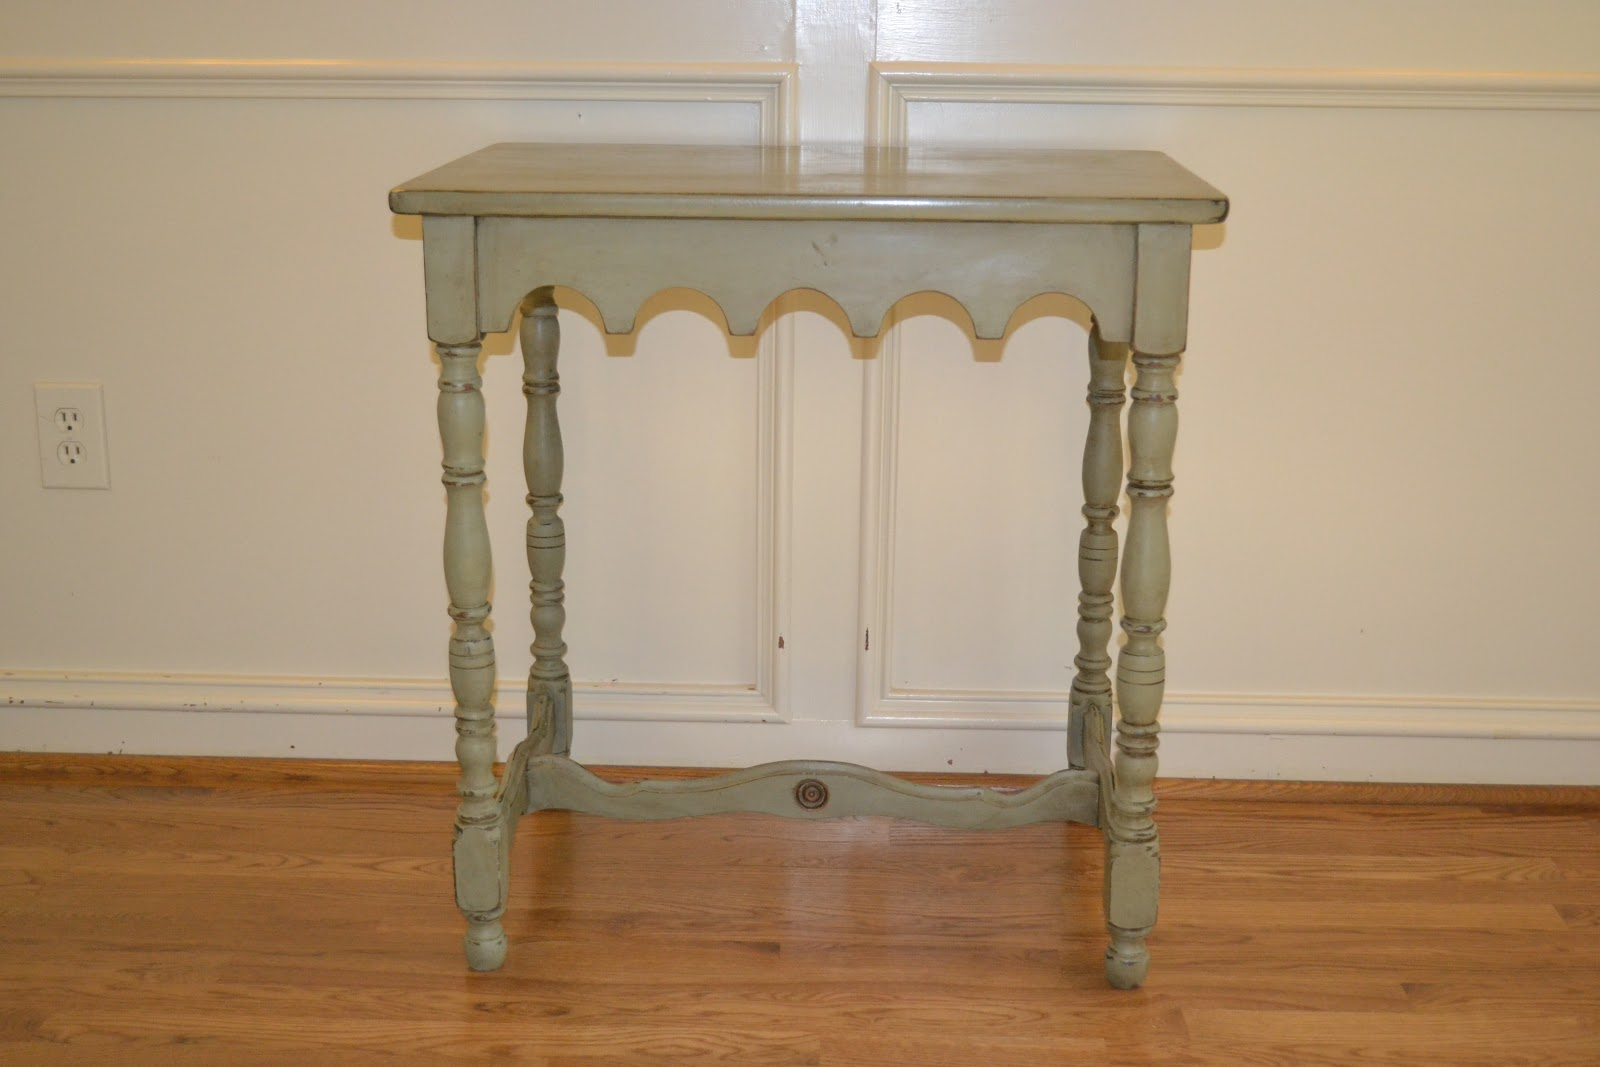 4Decor: Check out my latest custom painted furniture! I ...